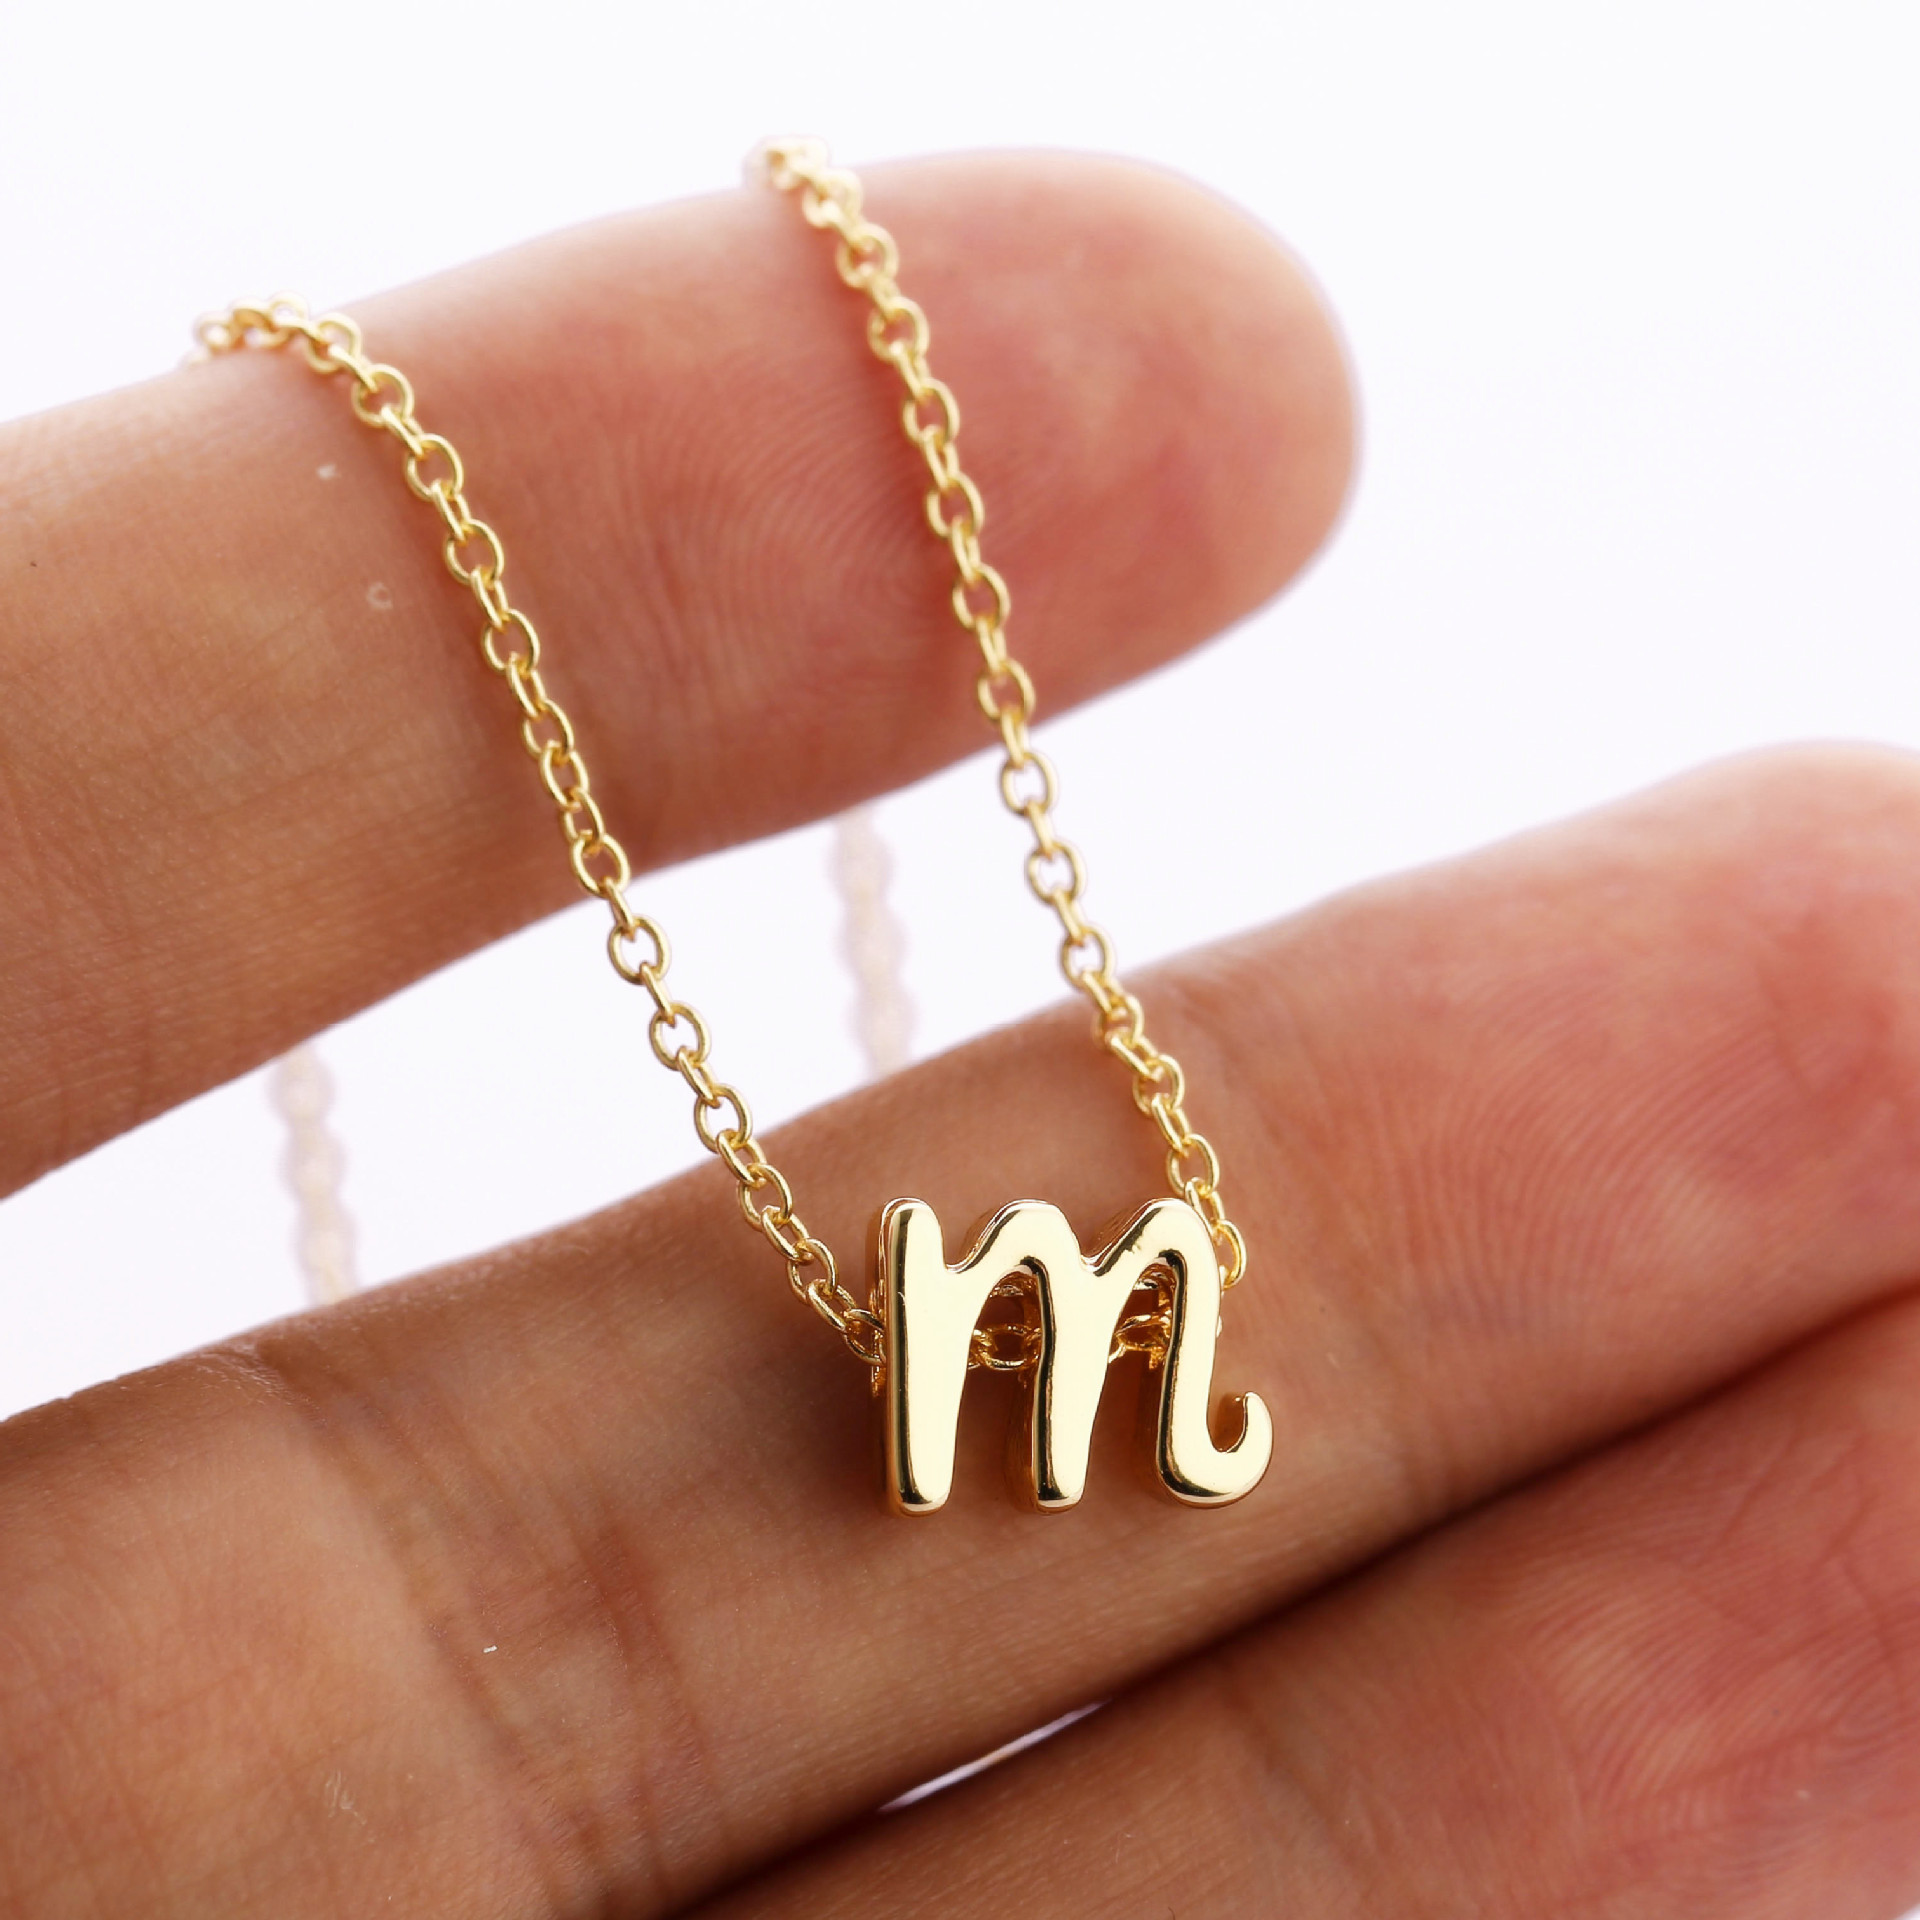 Davitu Tiny Cursive Initial Necklace Dainty Lowercase Initial Letter Necklace Delicate Personalized Name Gift for Mom Child Sister Metal Color: l, Main Stone Color: Gold